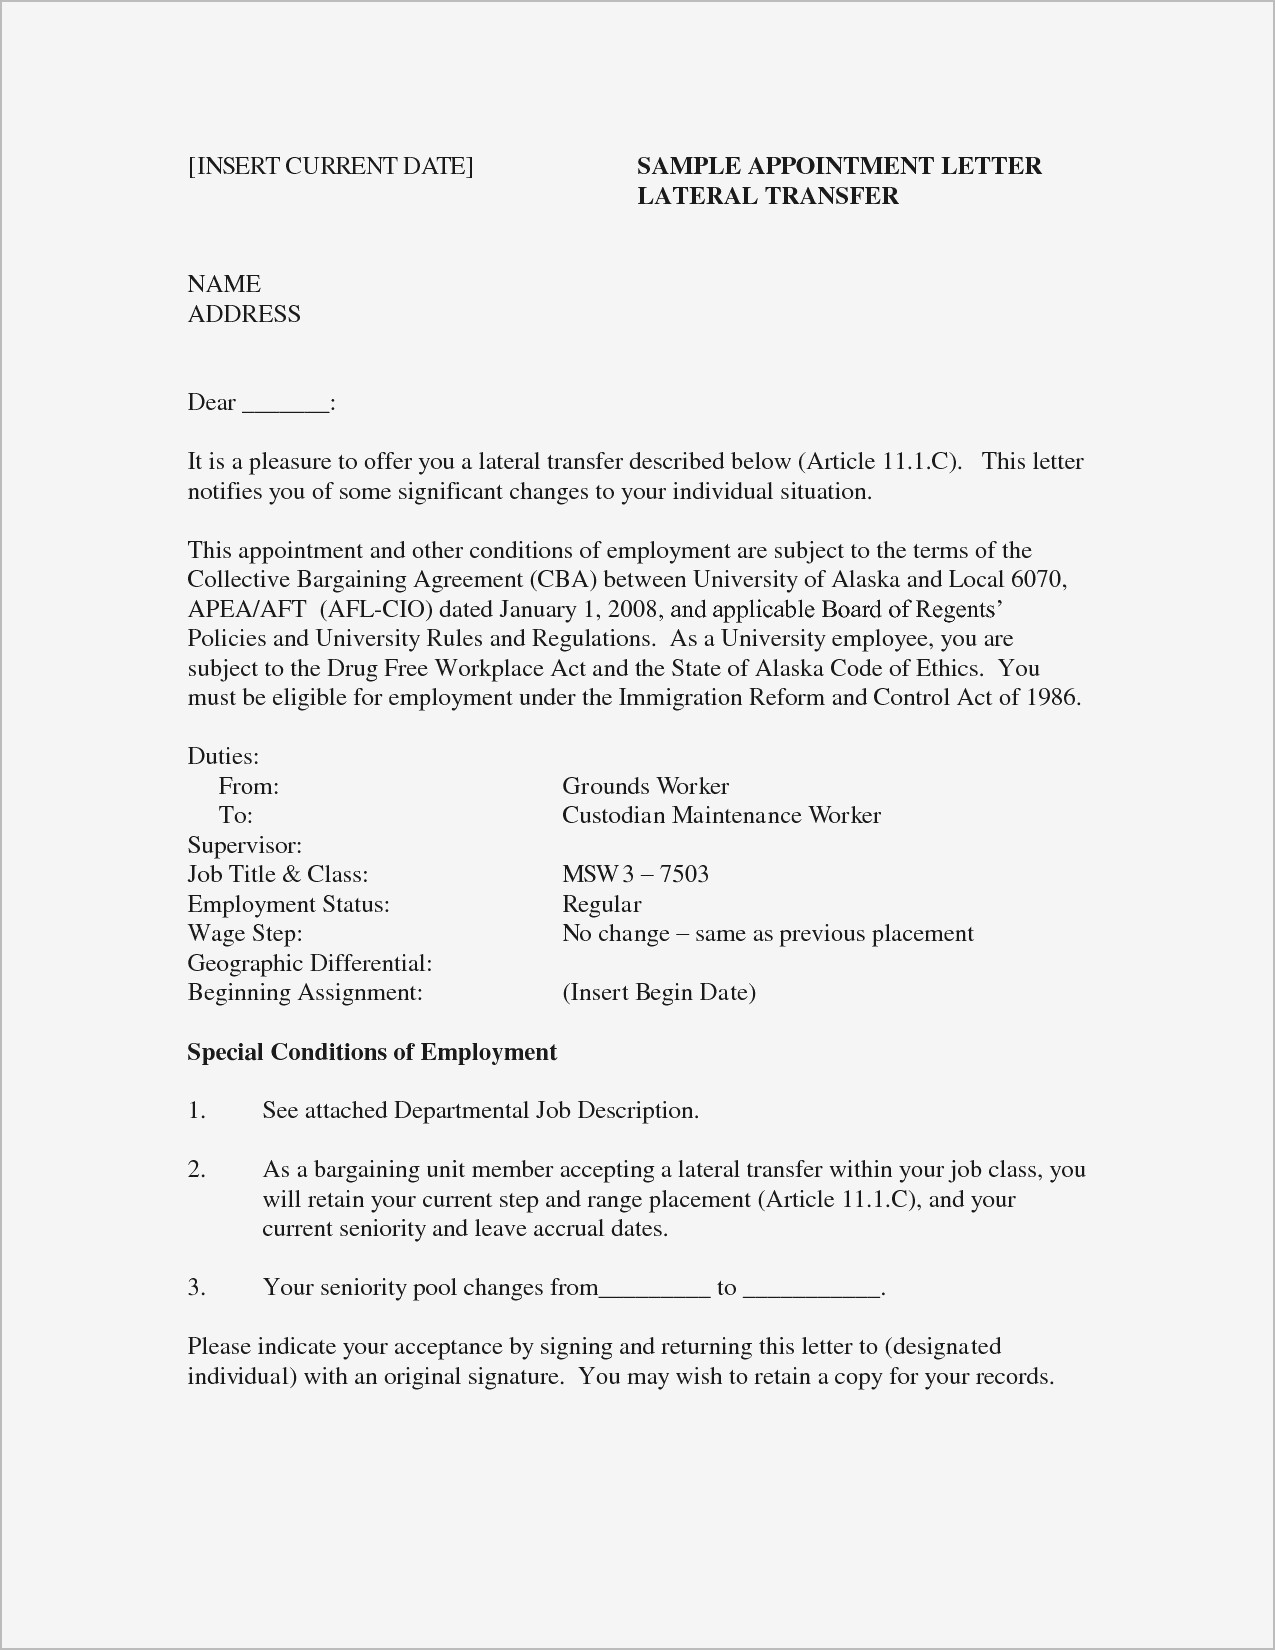 opt job offer letter template